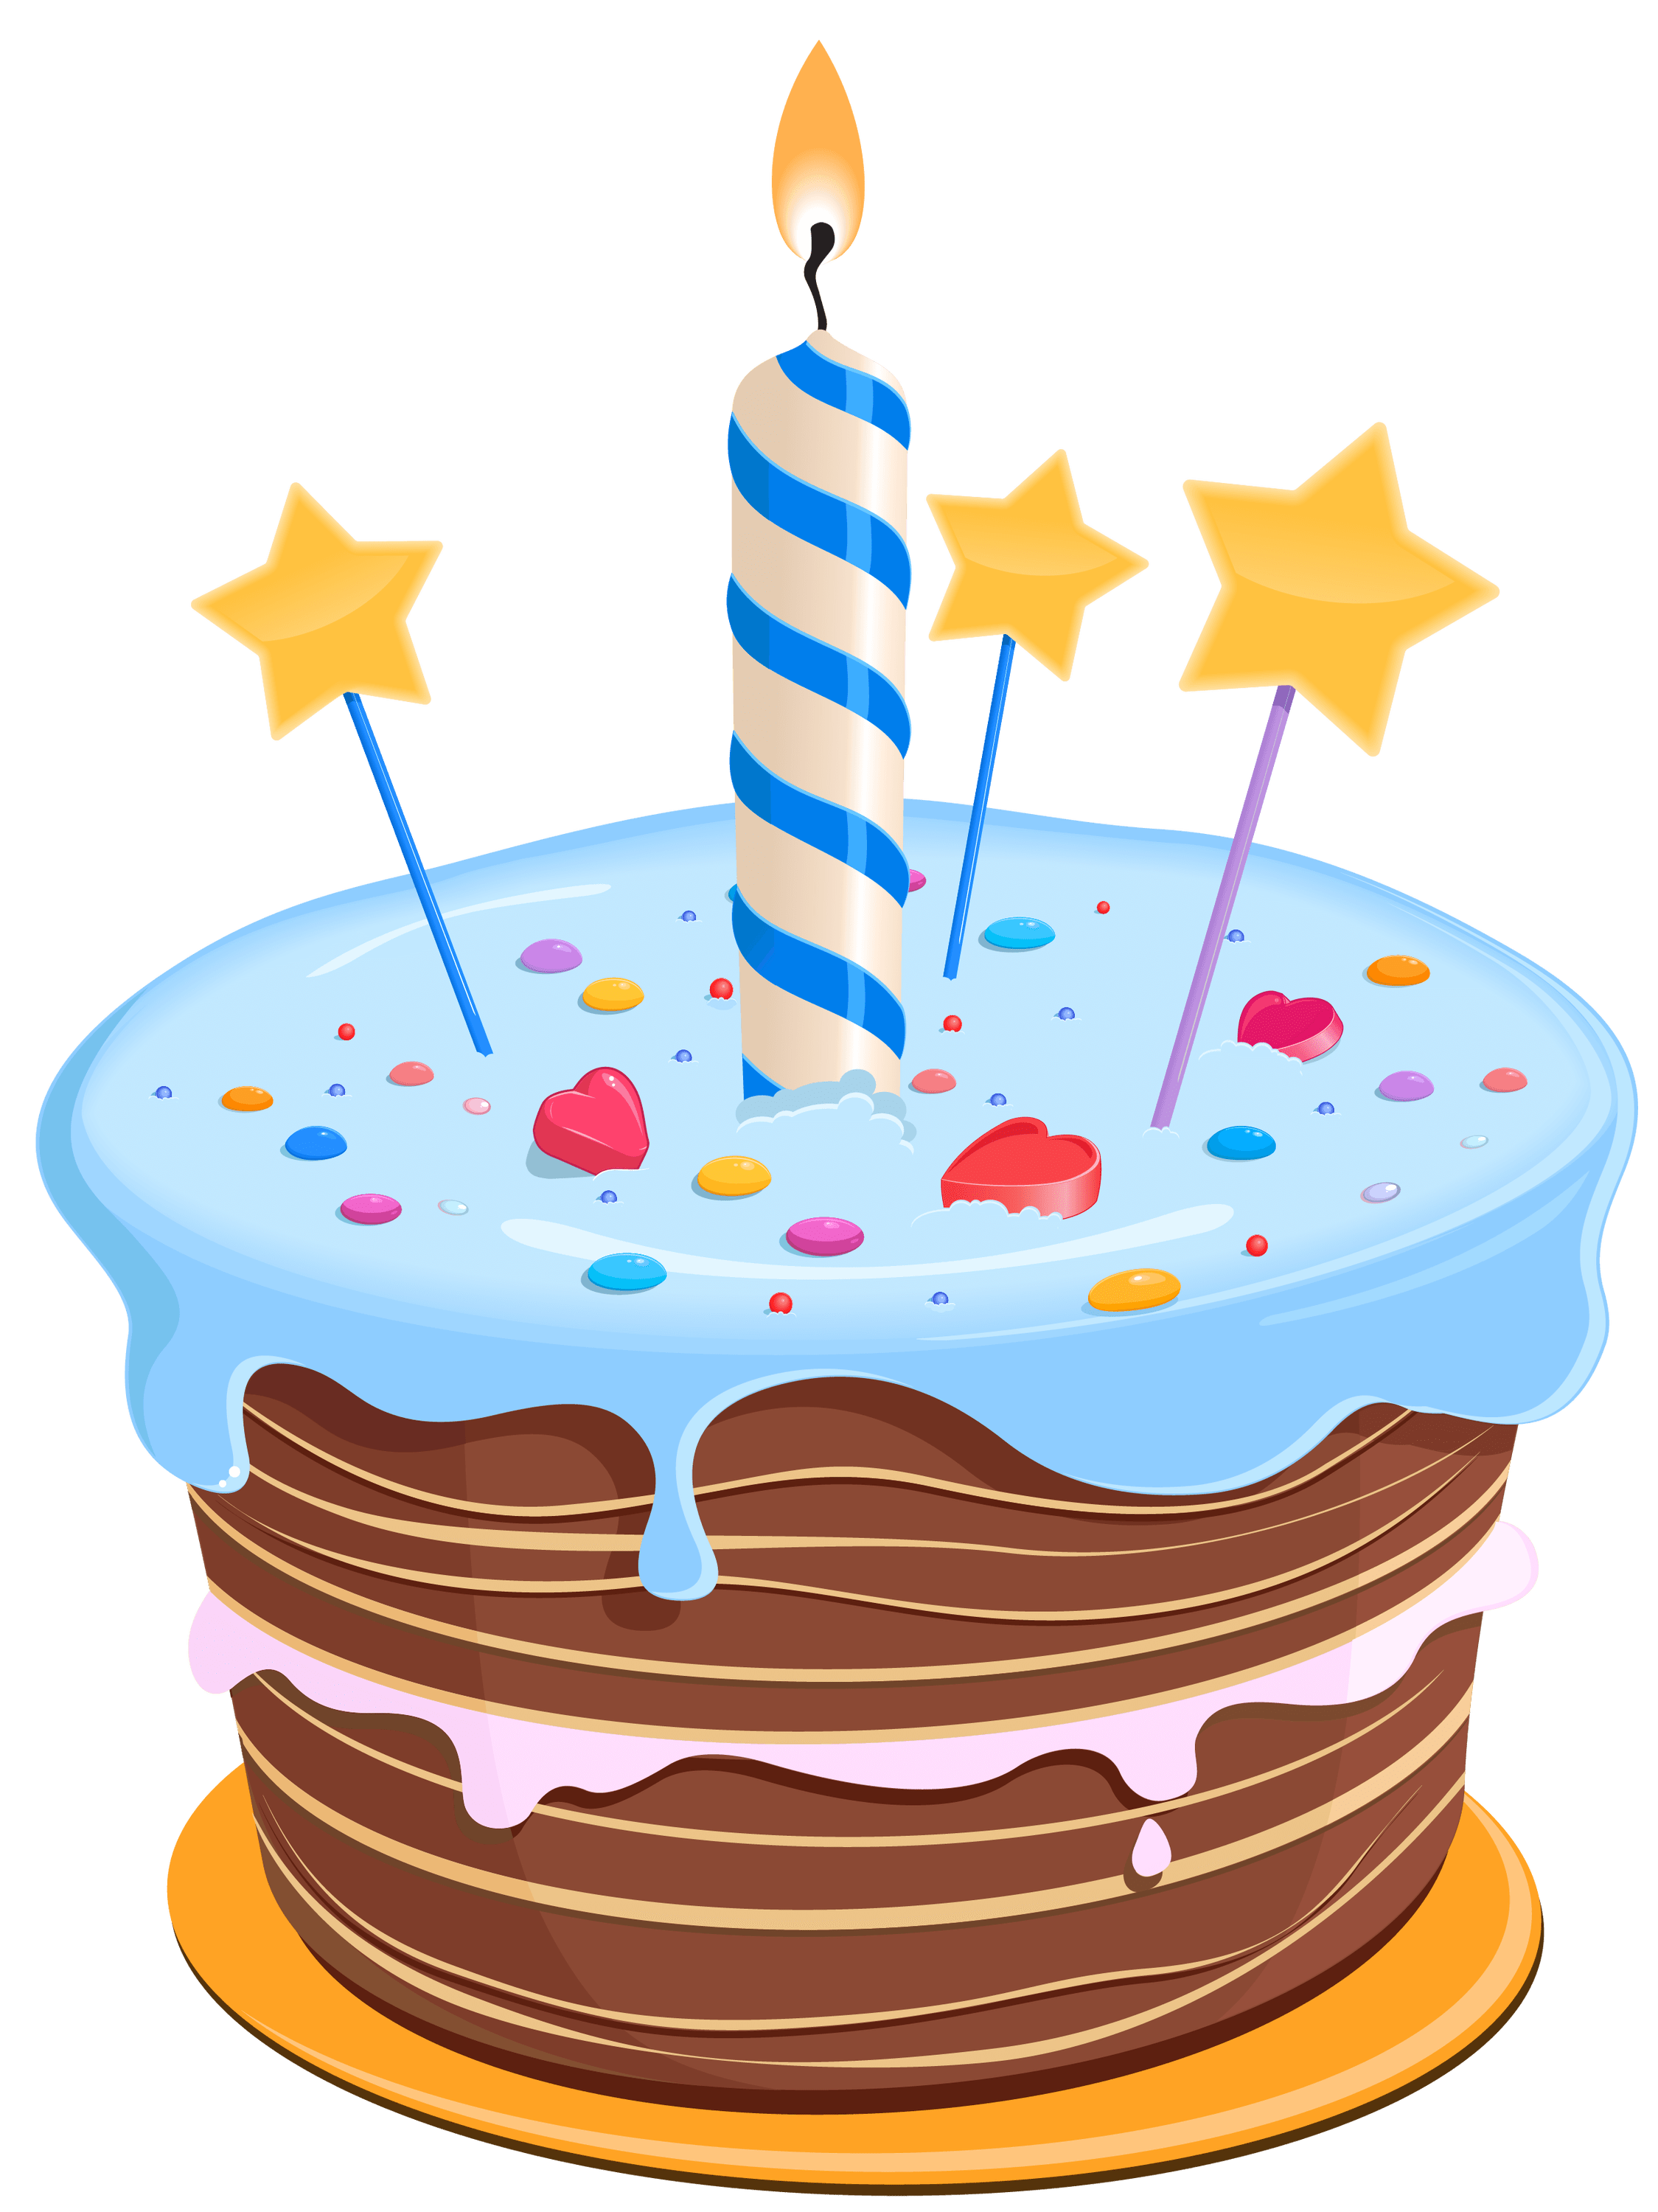 Cake clipart transparent background. Birthday drawing blue png